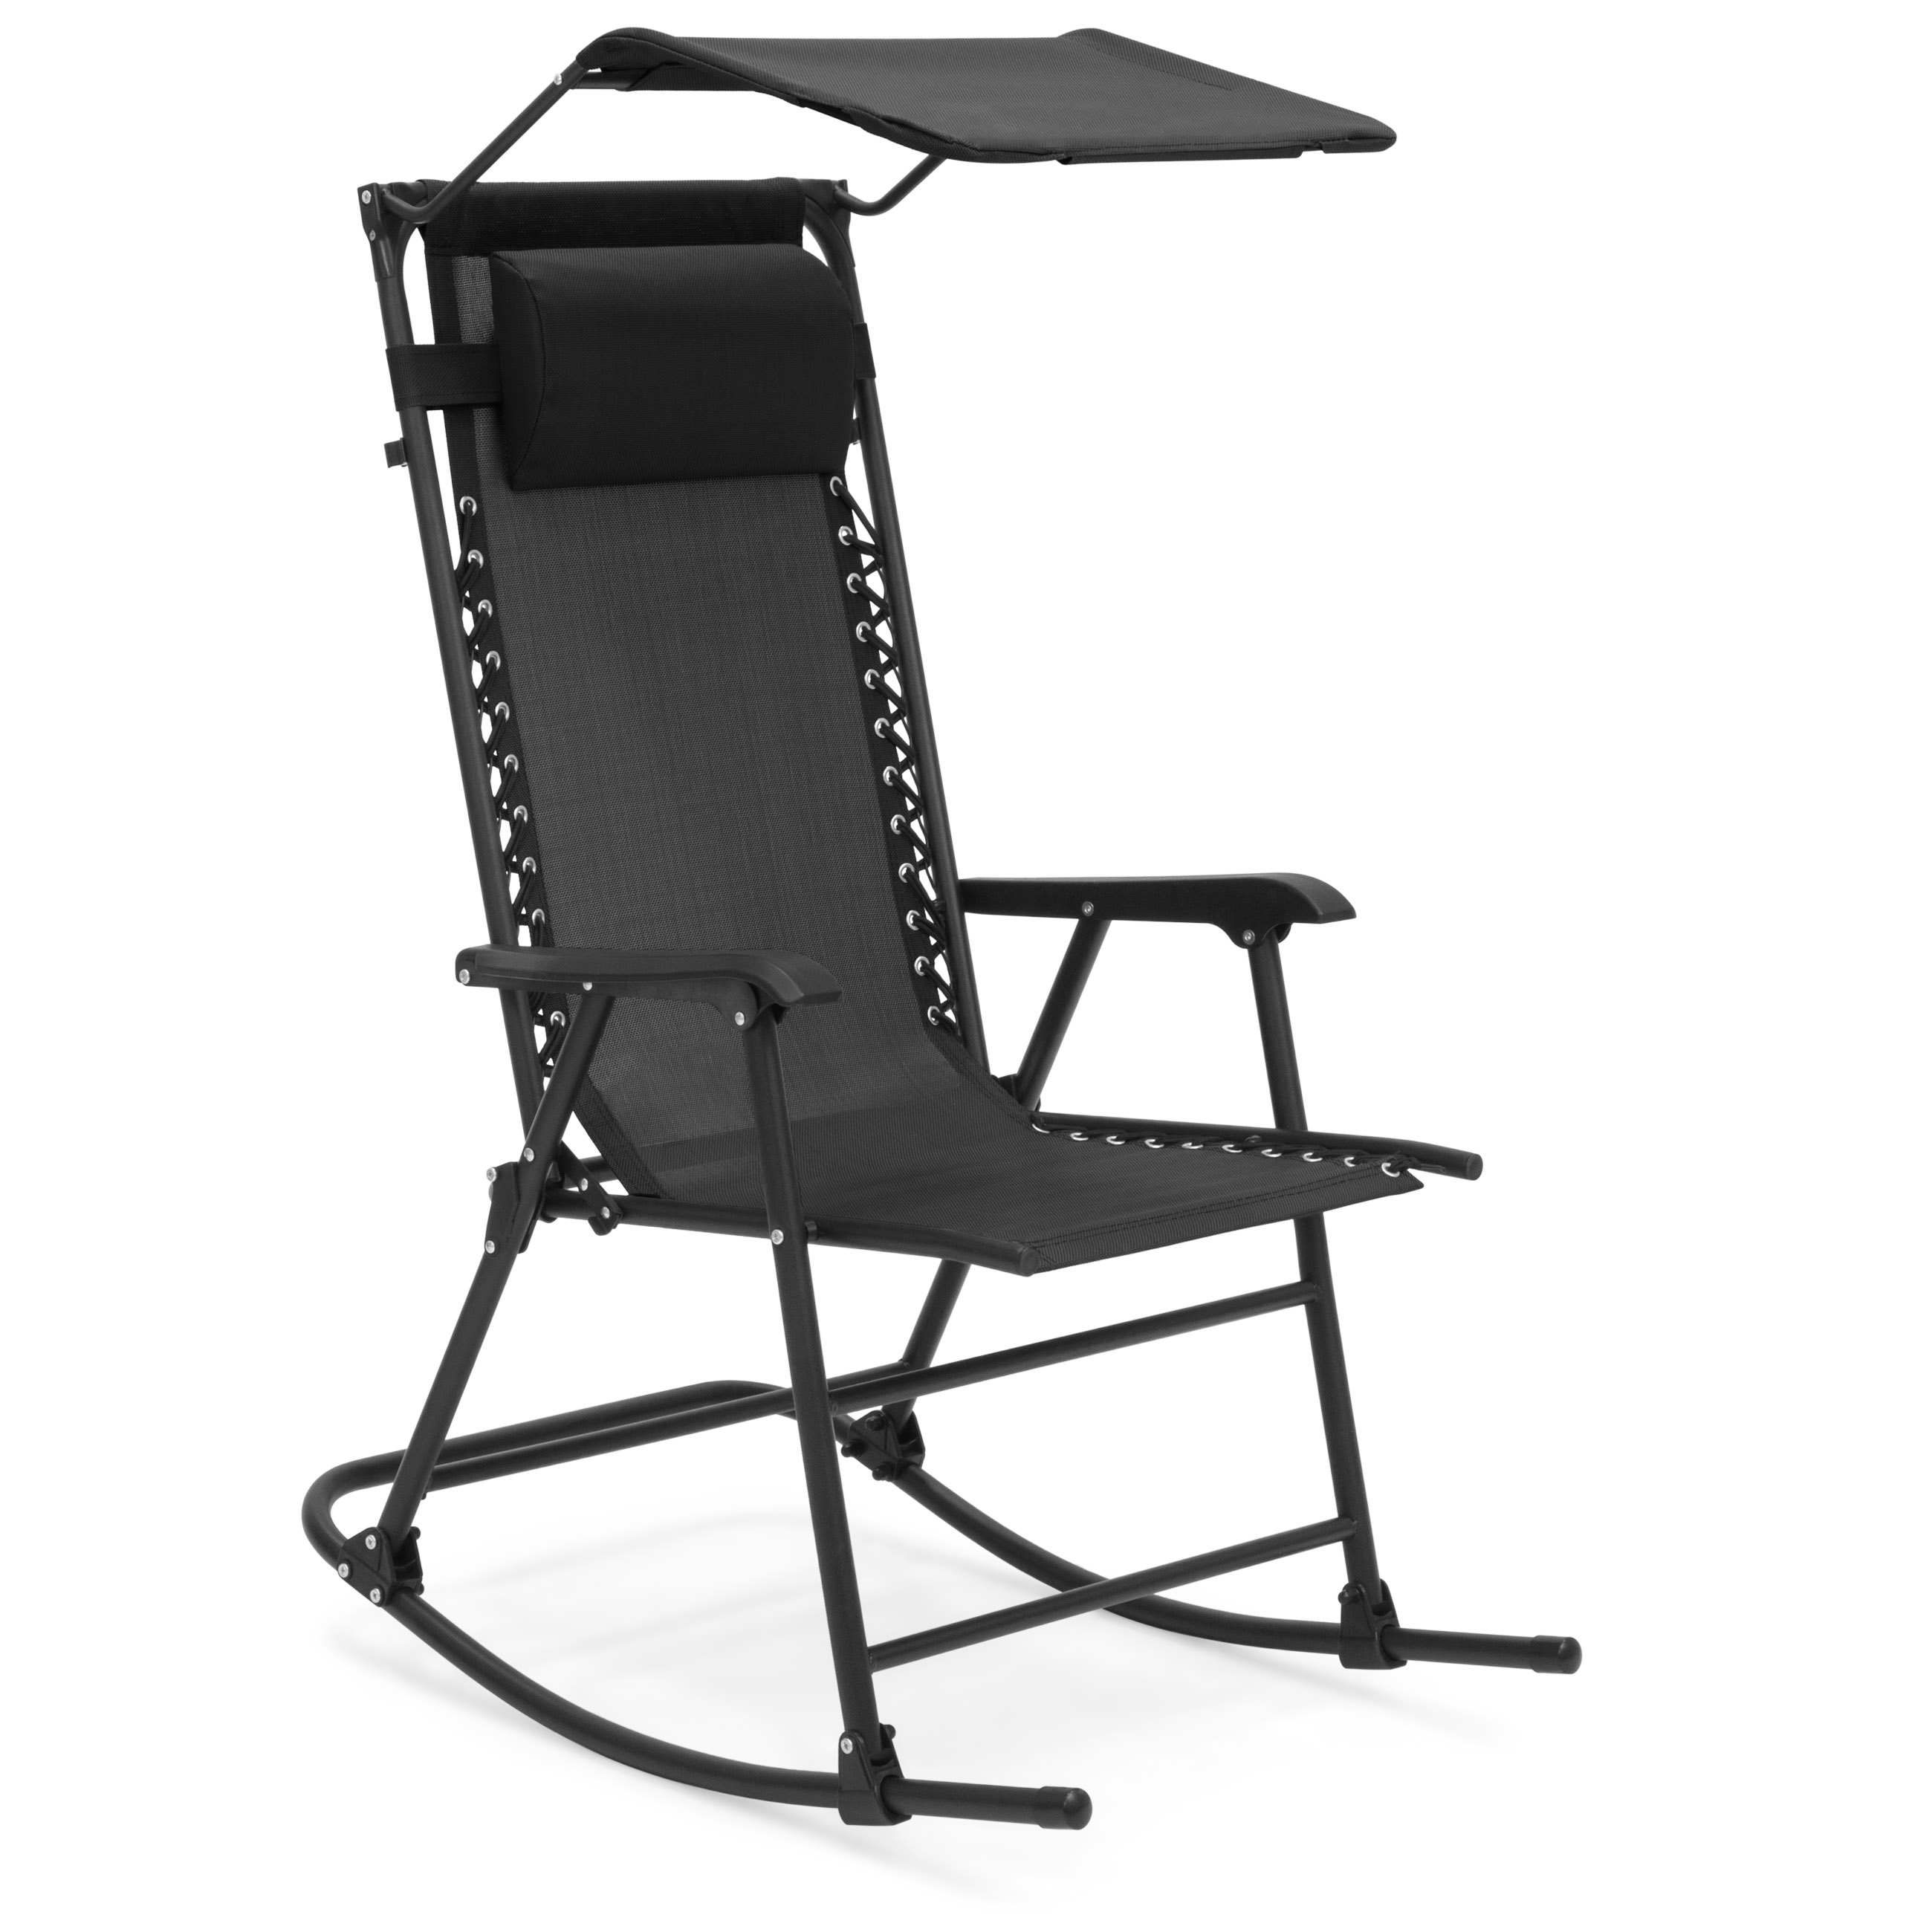 Best Choice Products Foldable Zero Gravity Rocking Patio Chair w/ Sunshade Canopy - Black